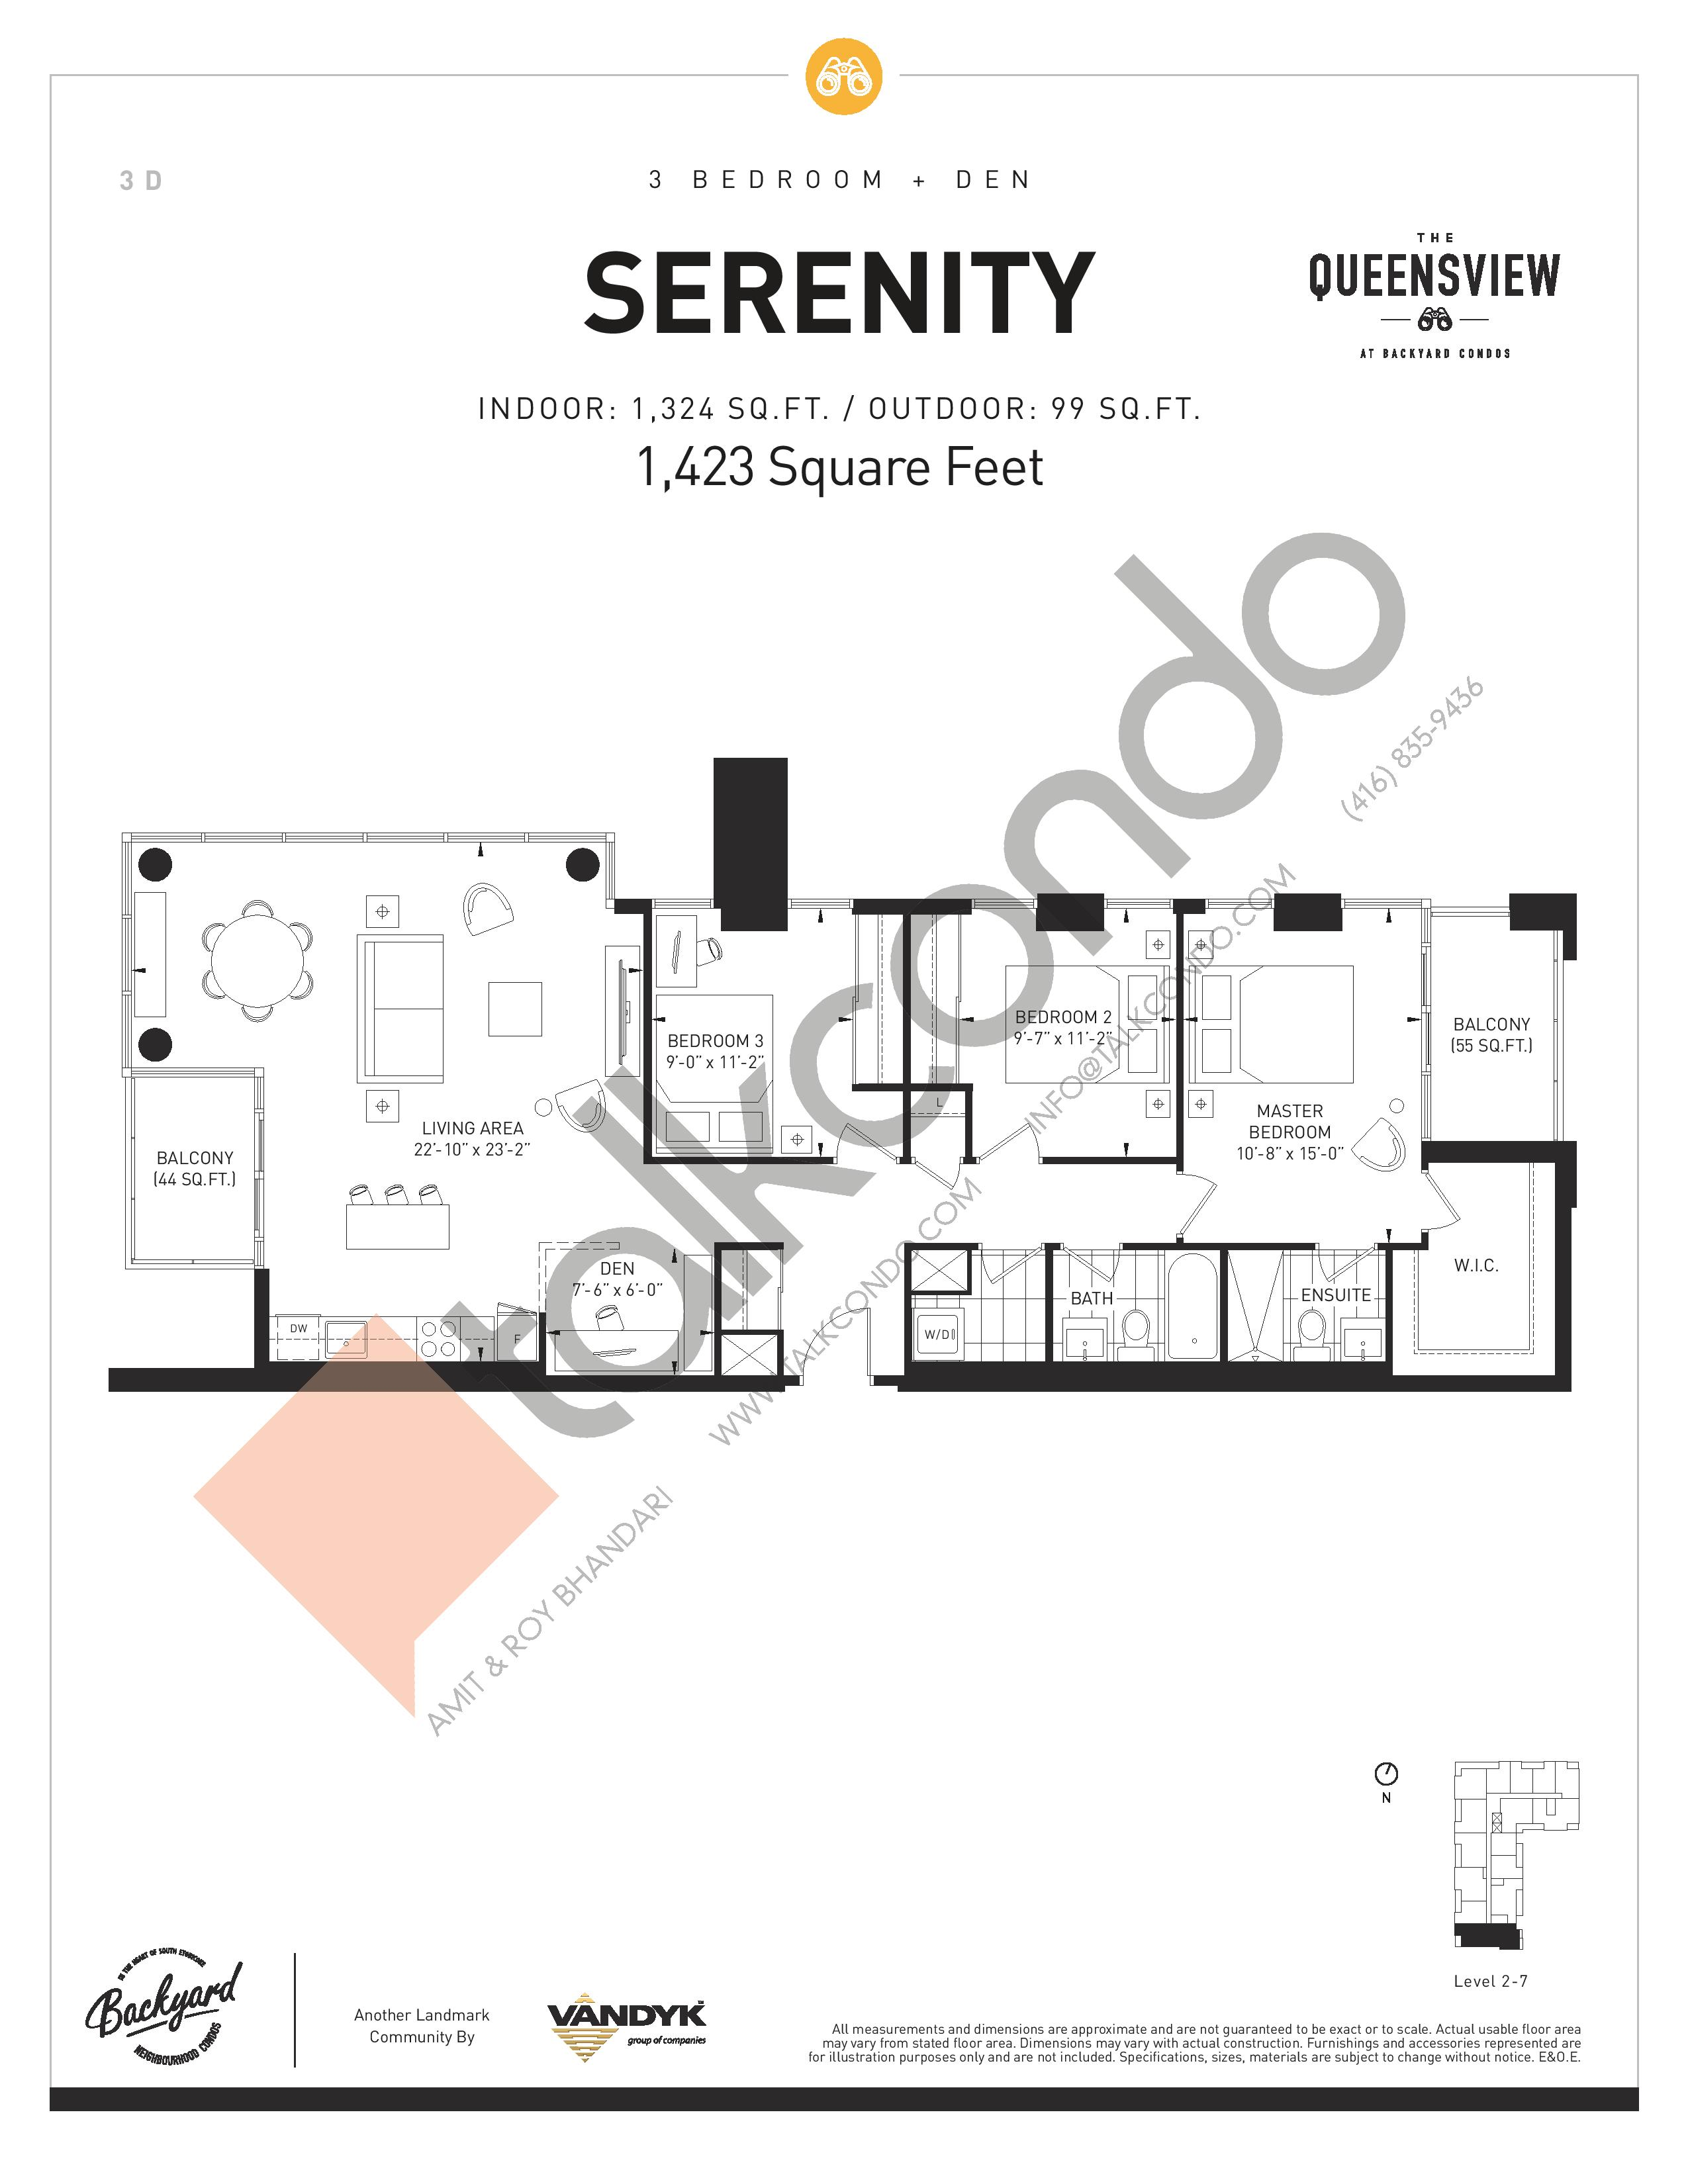 Serenity Floor Plan at The Queensview at Backyard Condos - 1324 sq.ft